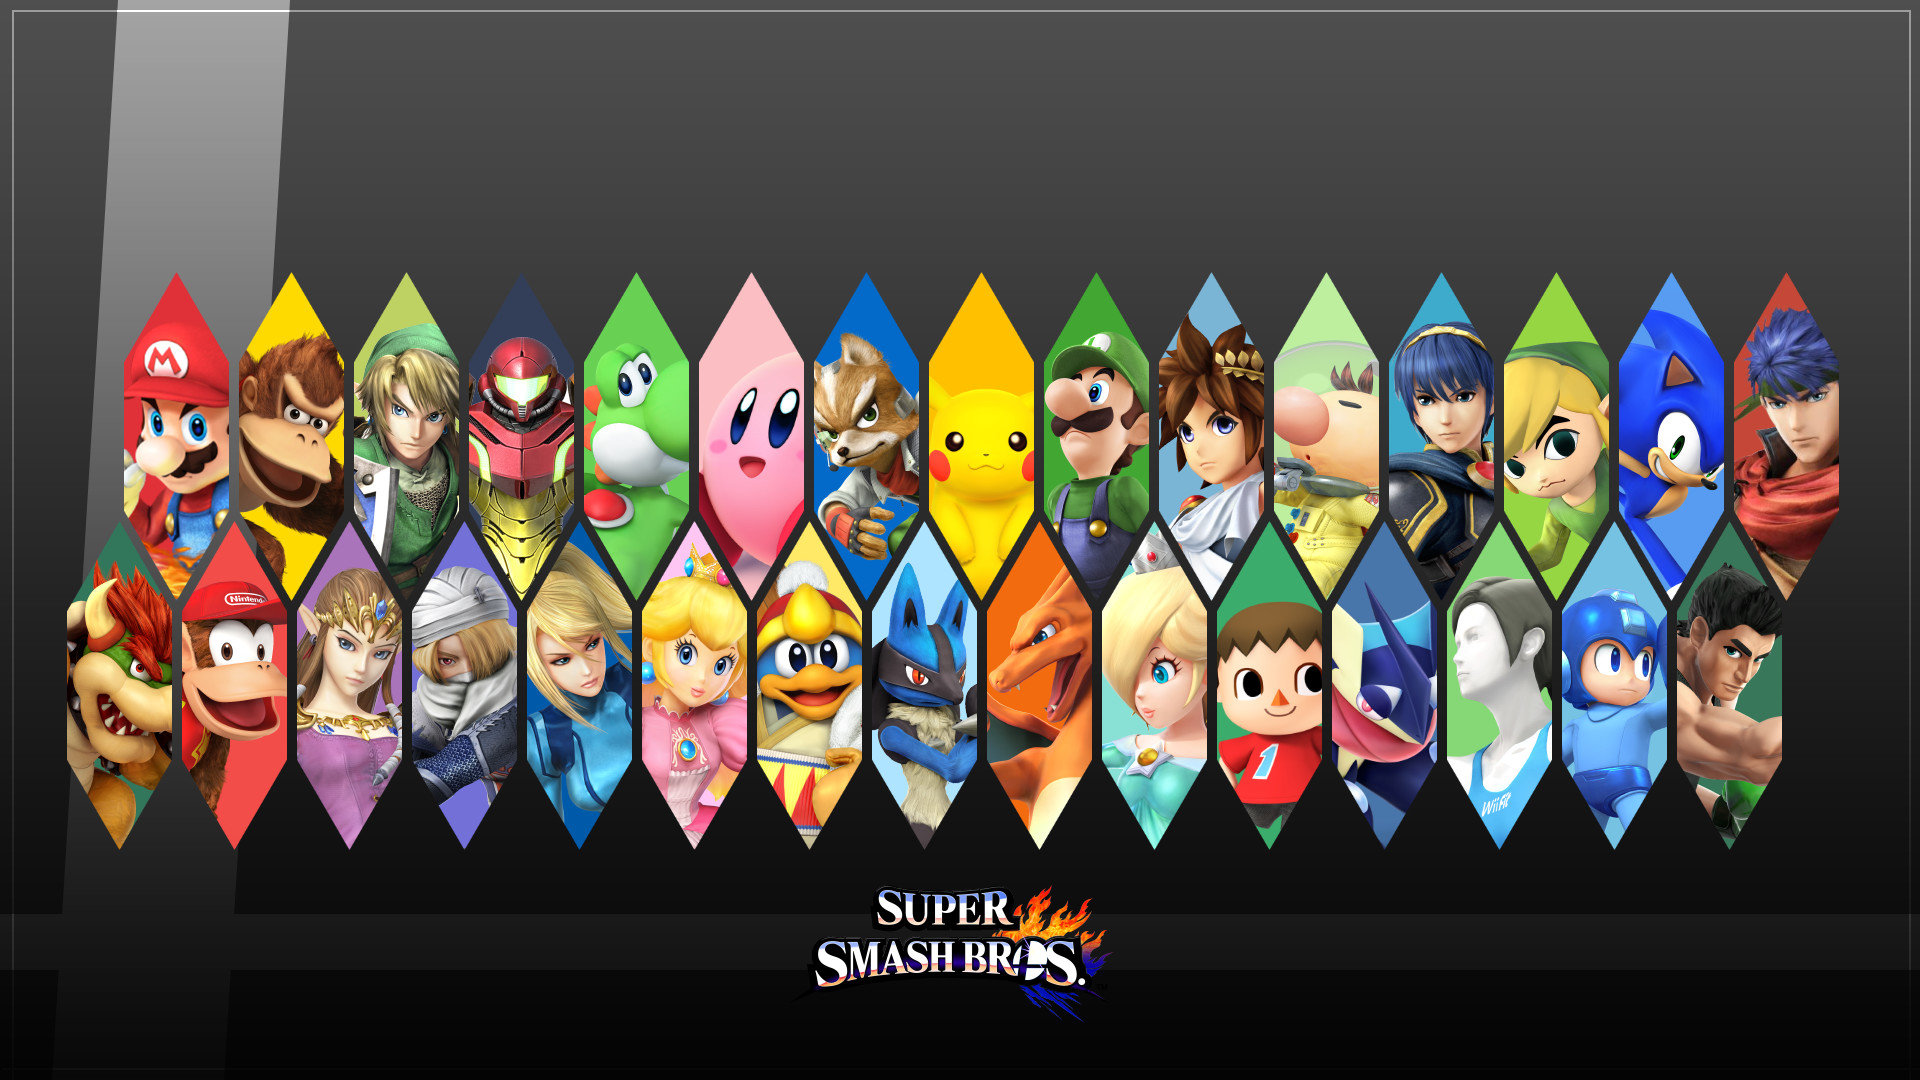 Super Smash Bros Wallpapers 1920x1080 Full Hd 1080p Desktop